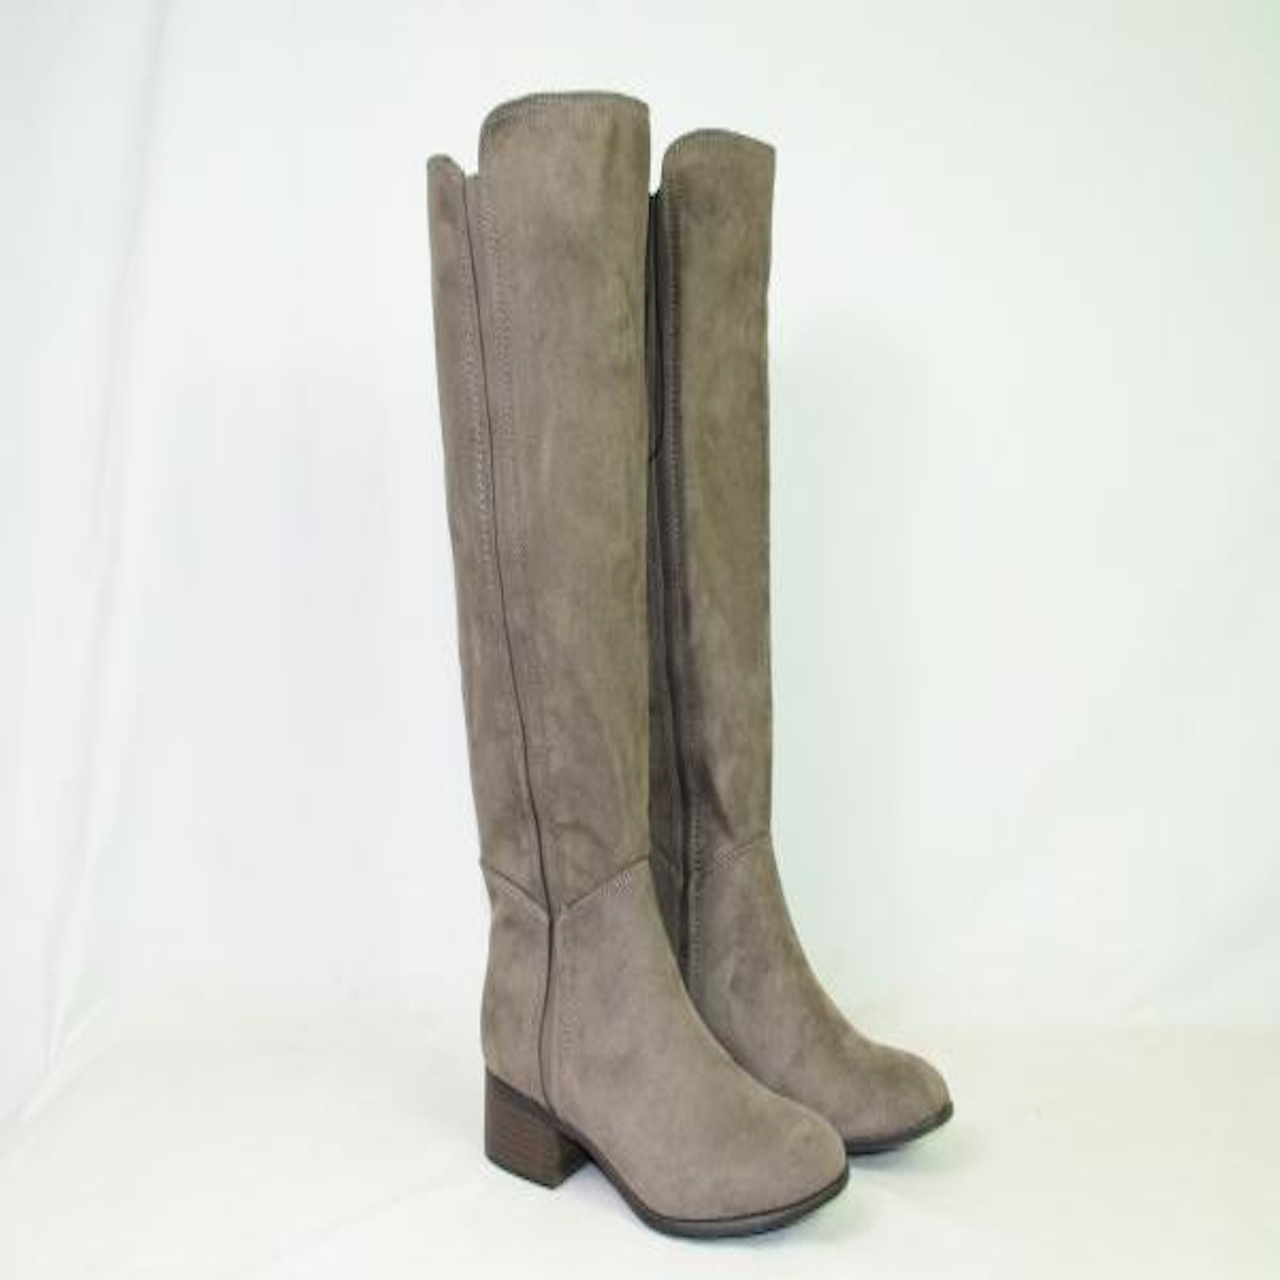 Evie Women's Tall Suede Fashion Boots